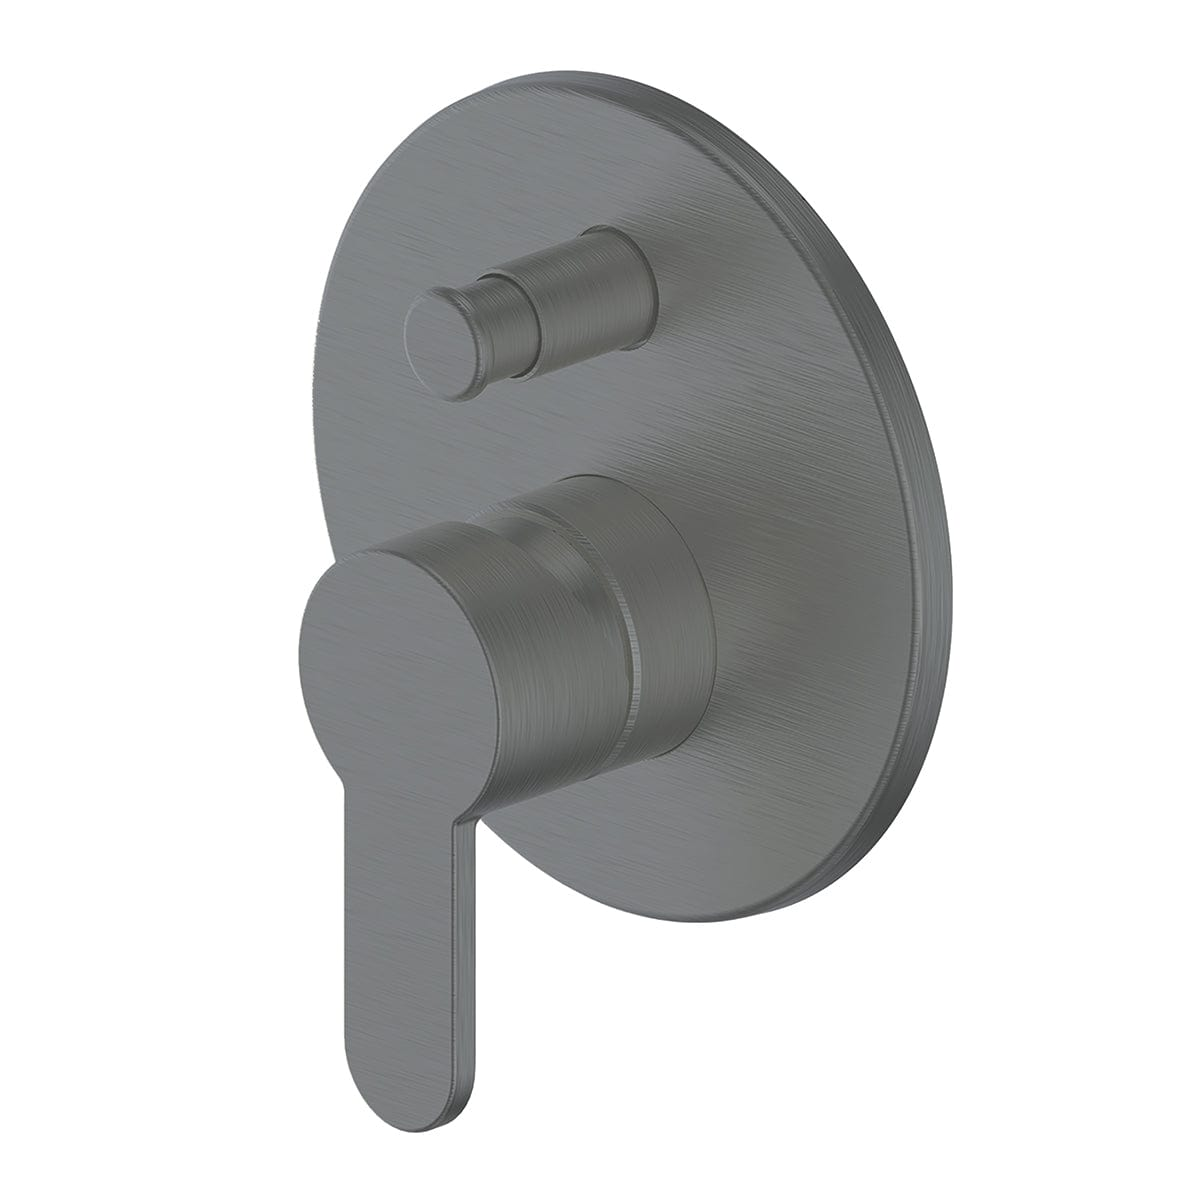 Greens Astro Shower Mixer with Diverter | Gunmetal